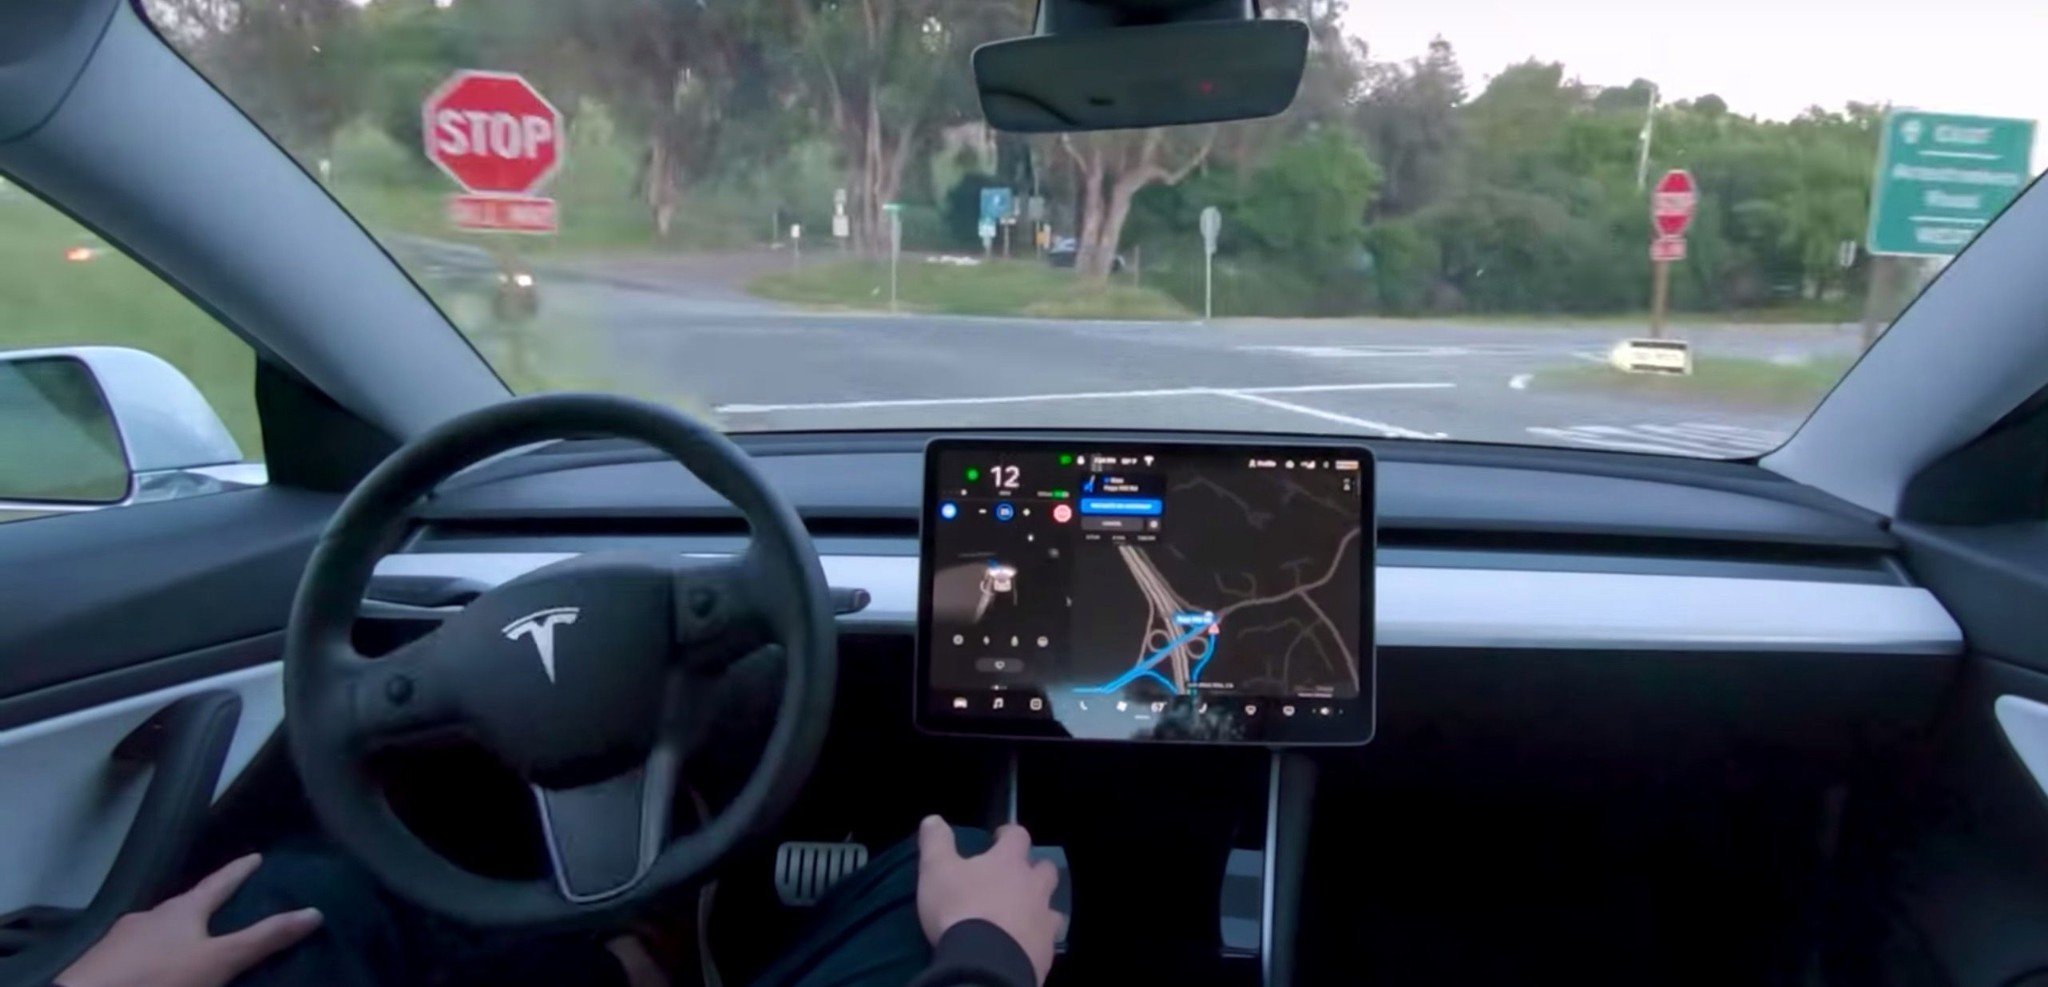 Tesla starts Full Self-Driving Beta rollout, Elon Musk says it 'will be extremely slow and cautious' - Electrek